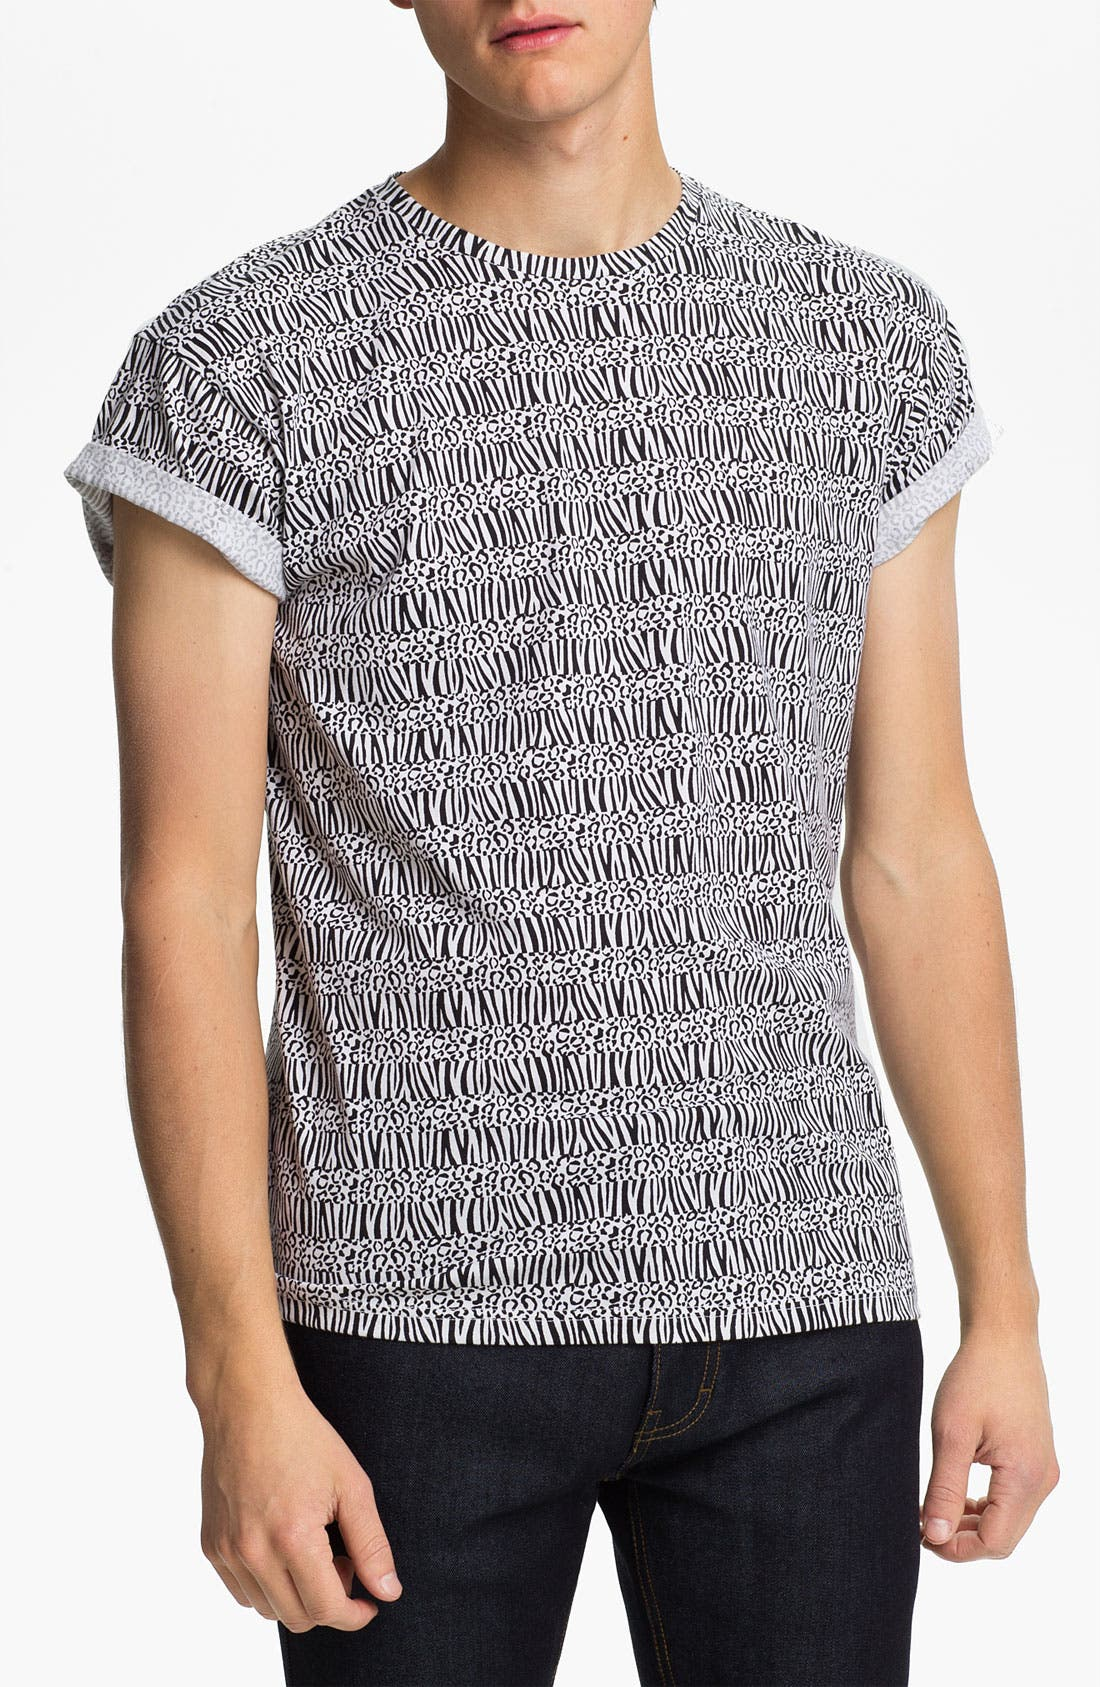 Alternate Image 1 Selected - Topman 'High Roller' All Over Animal Print T-Shirt